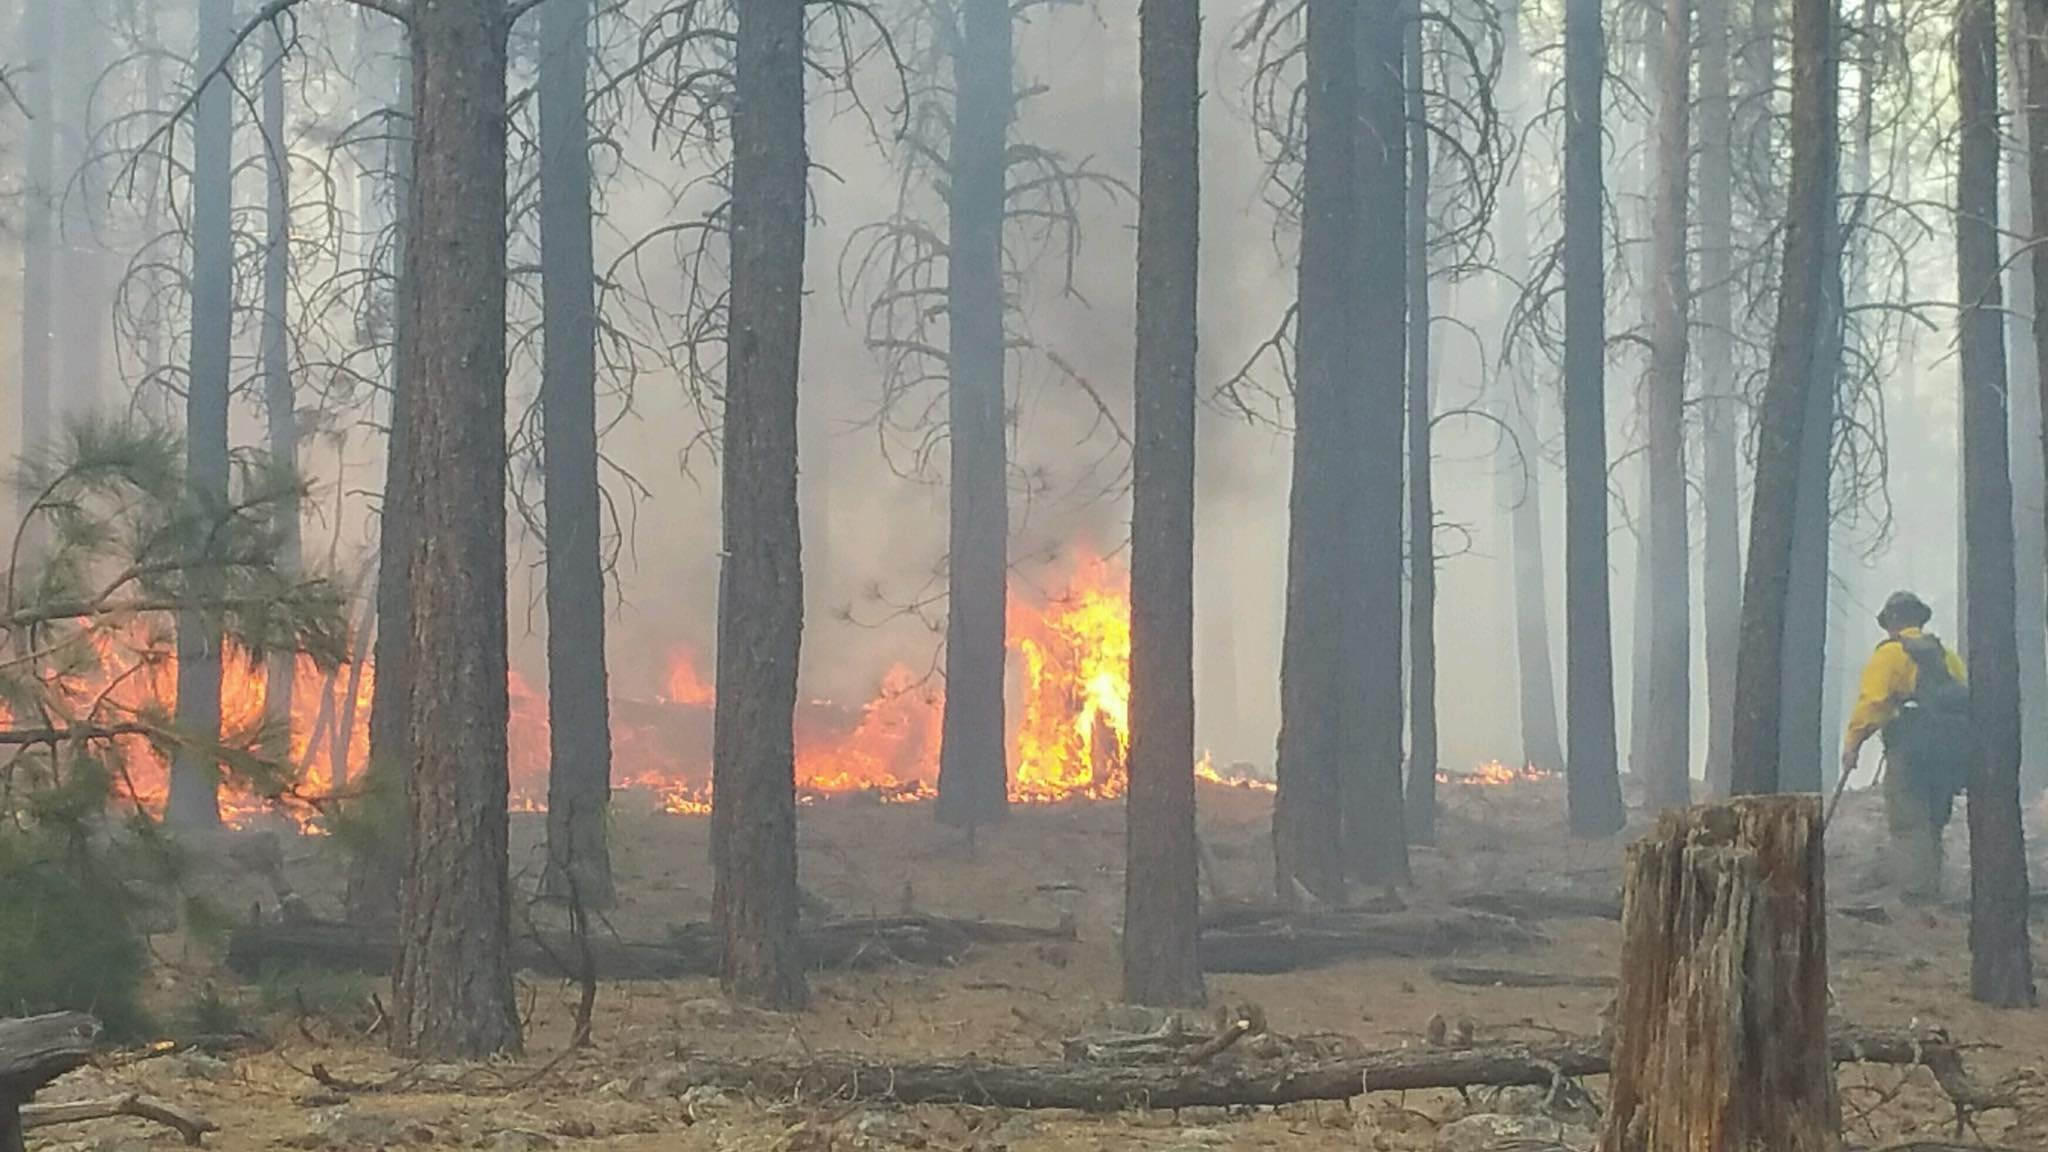 A campsite north of the fire was evacuated. (Source: Forest Lakes Fire Department)